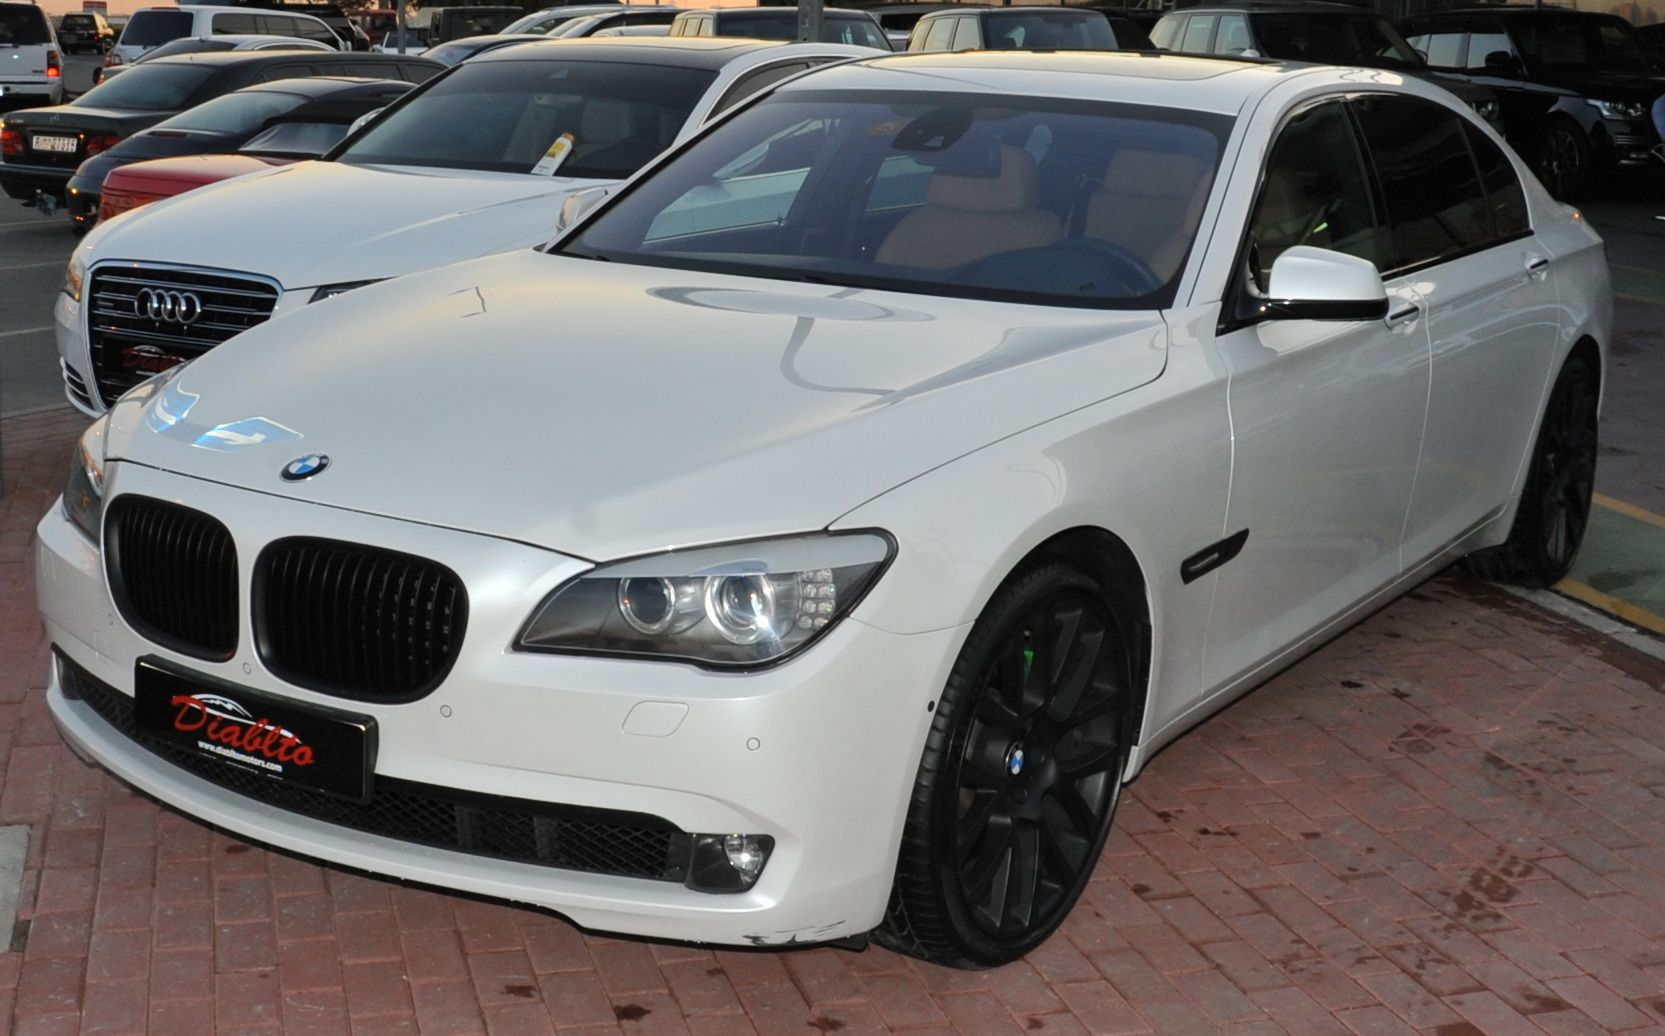 BMW 750 LI - Service Contract and Under Warranty 2015 - AED